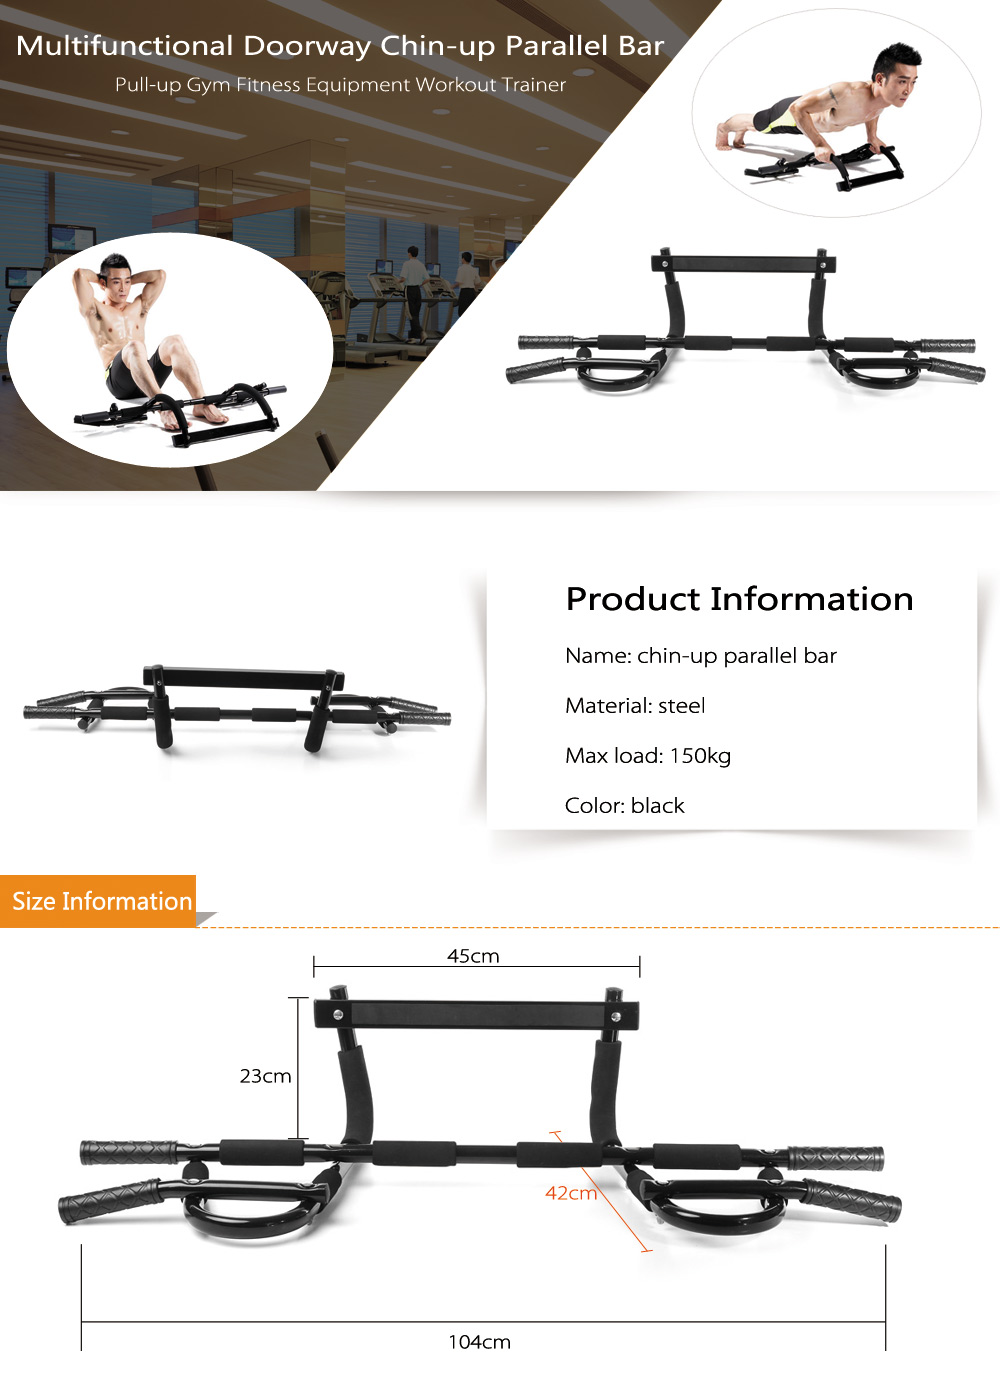 Multifunctional Doorway Chin-up Parallel Bar Pull-up Gym Fitness Equipment Workout Trainer